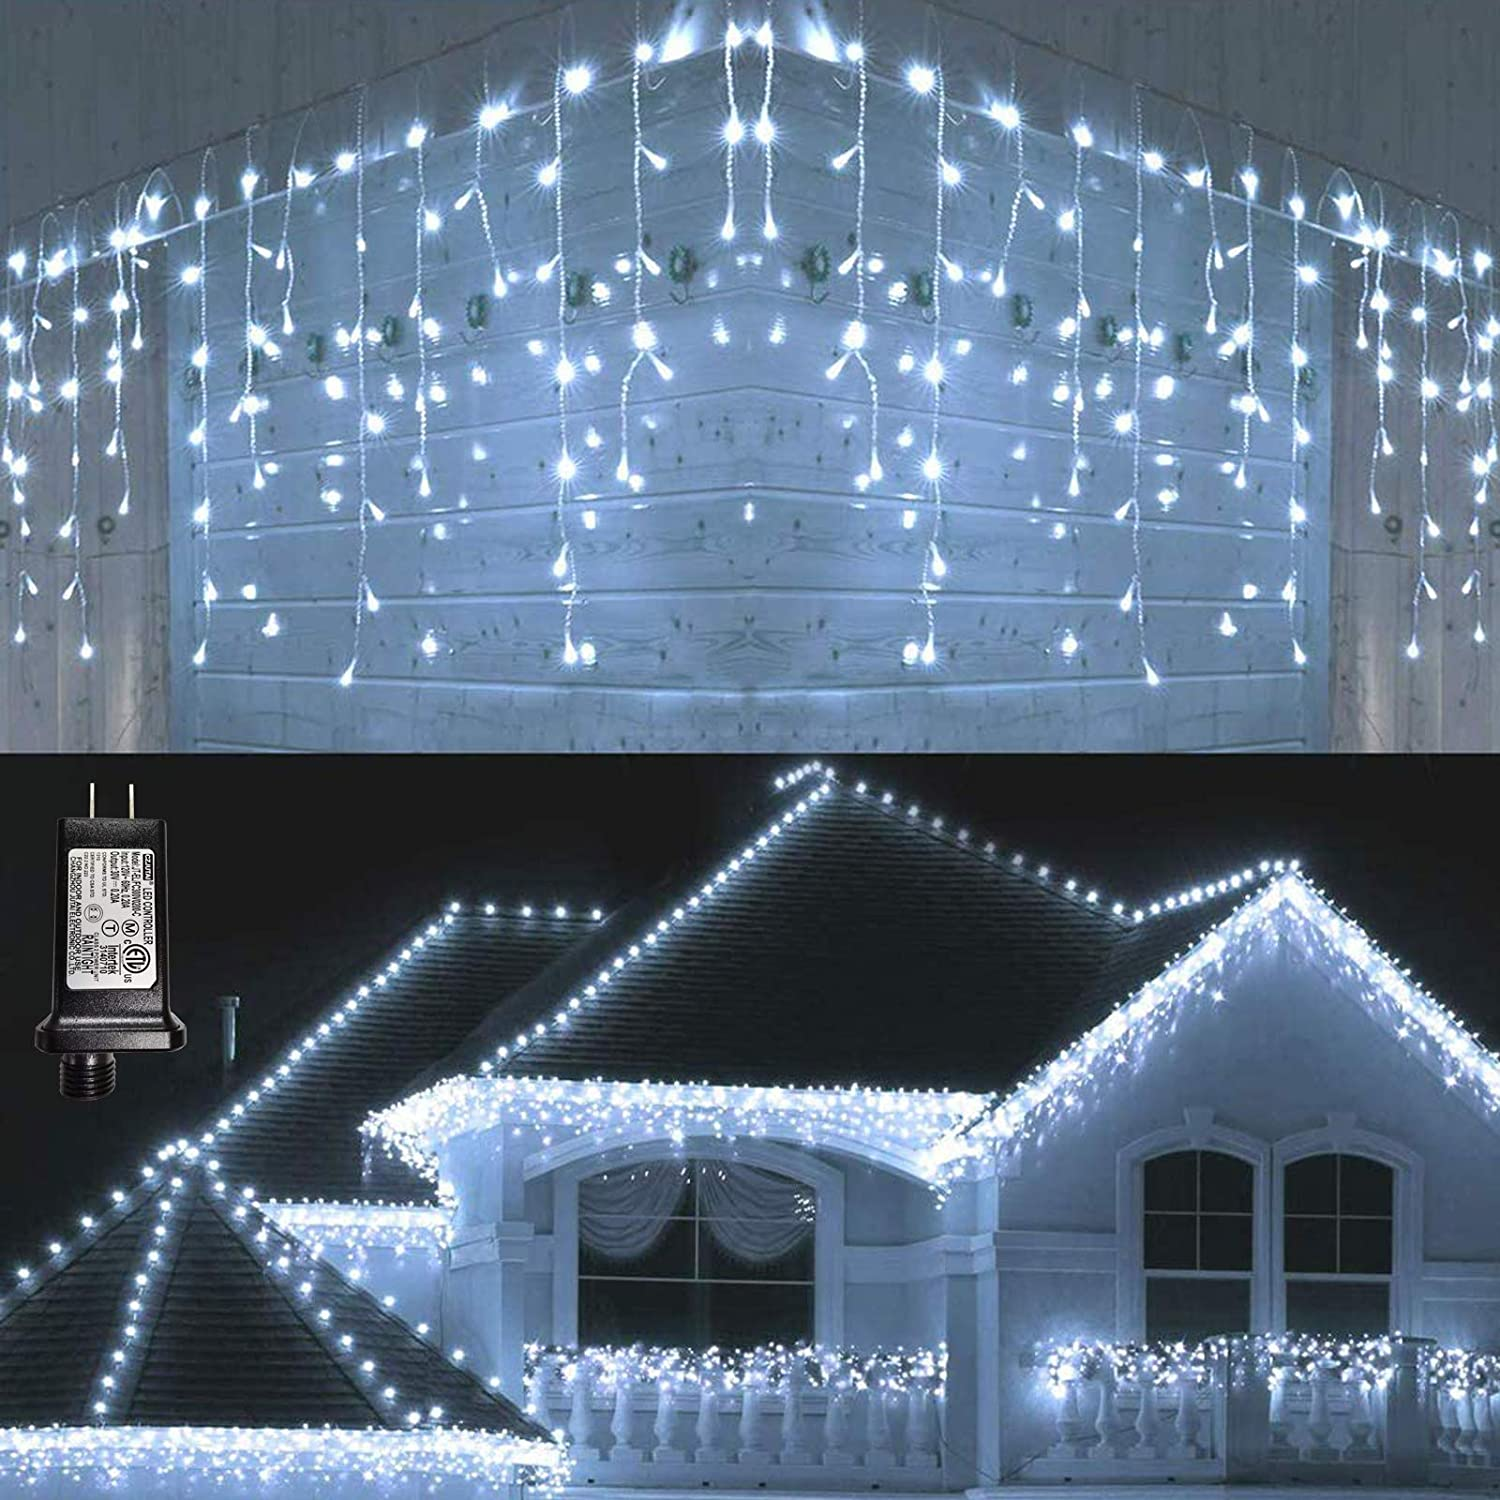 Lyhope Icicle Christmas Lights, 432 LED 35.4ft 8 Modes Low Voltage Icicle String Lights with 72 Drops, Window Curtain Fairy Lights for Xmas, Eaves, Wedding, Garden, Outdoor, Indoor Decor (White)